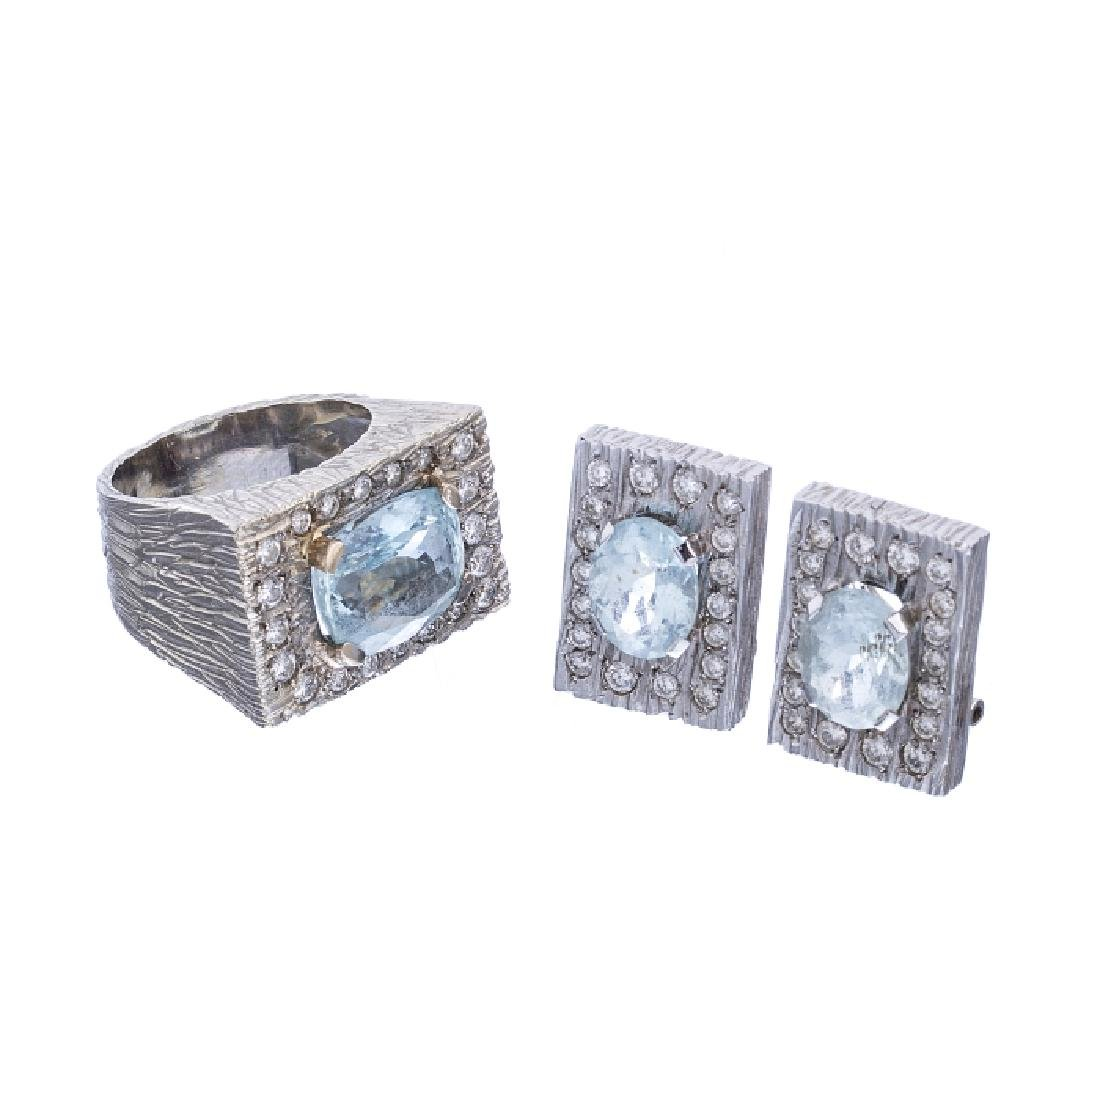 White gold set with diamonds and aquamarines